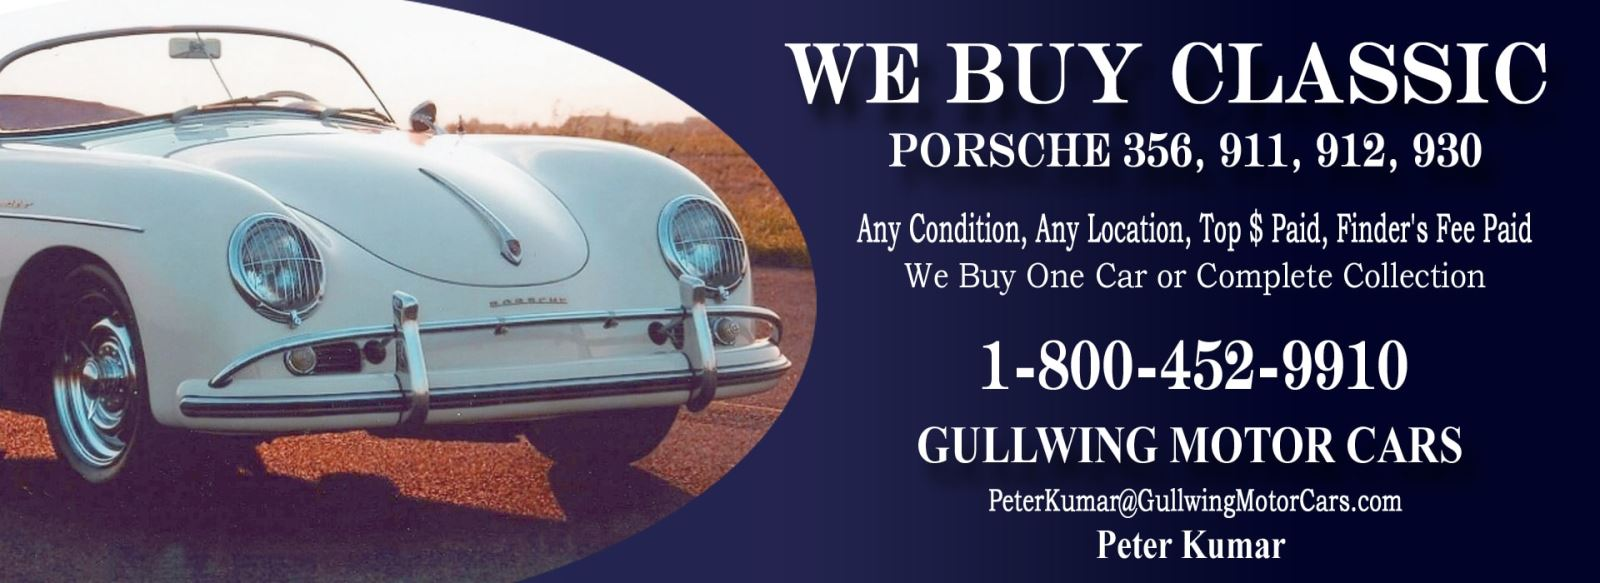 Classic Porsche for sale, we buy vintage Porsche. Call Peter Kumar. Gullwing Motor